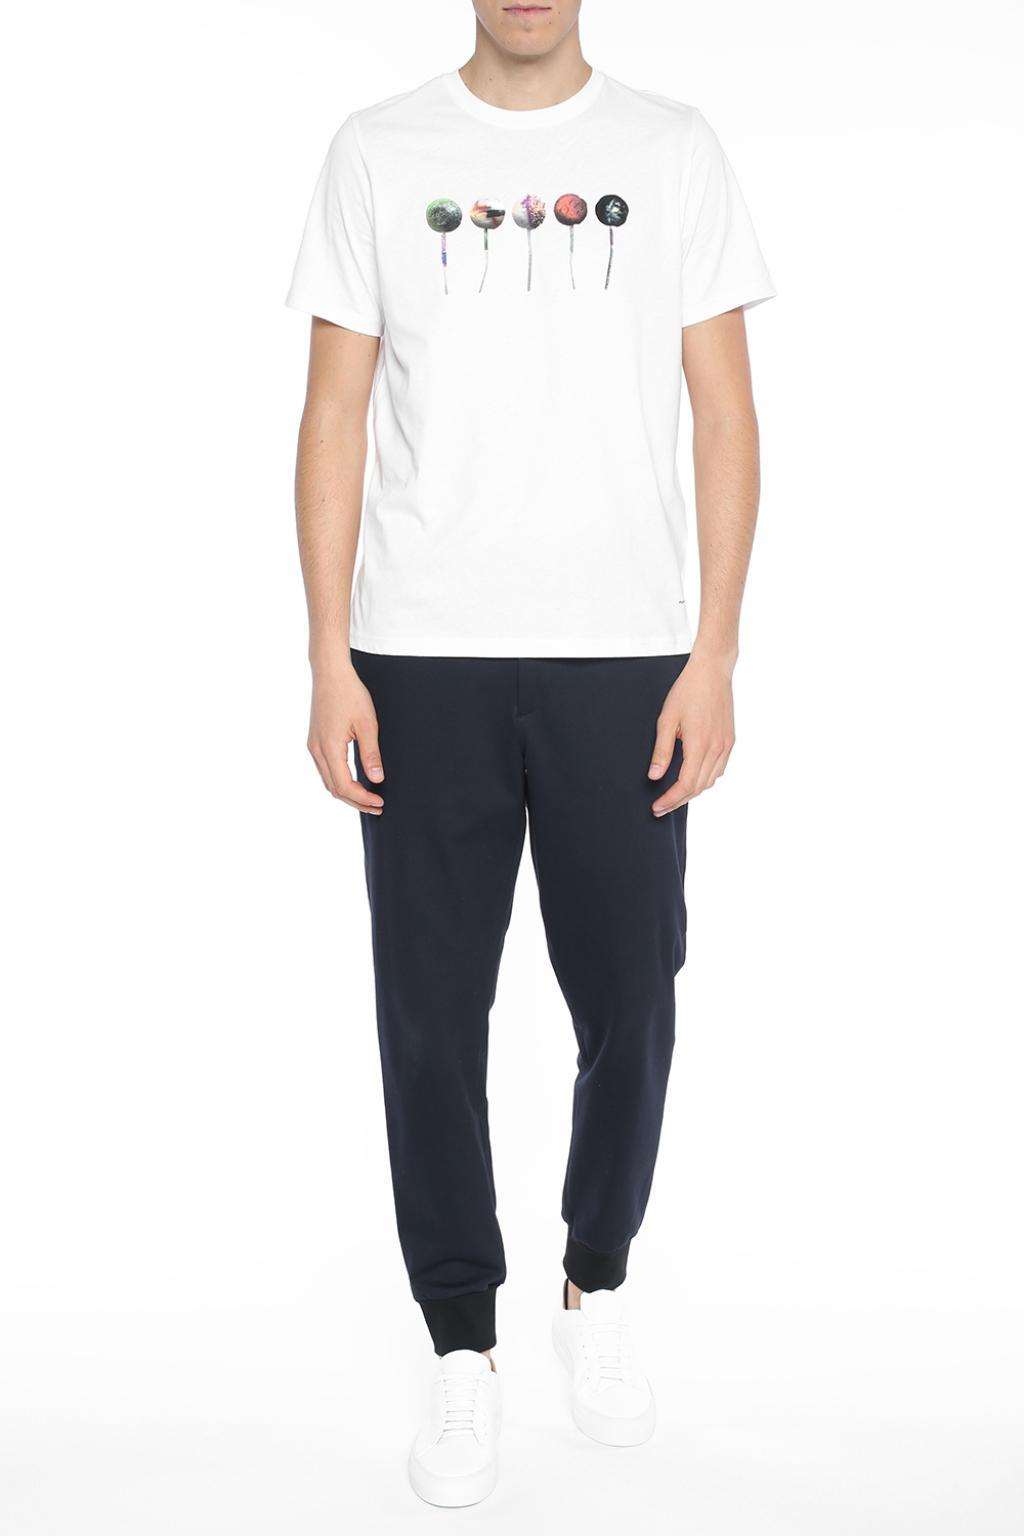 Paul Smith Cotton Trousers With Elasticated Cuffs Navy Blue for Men